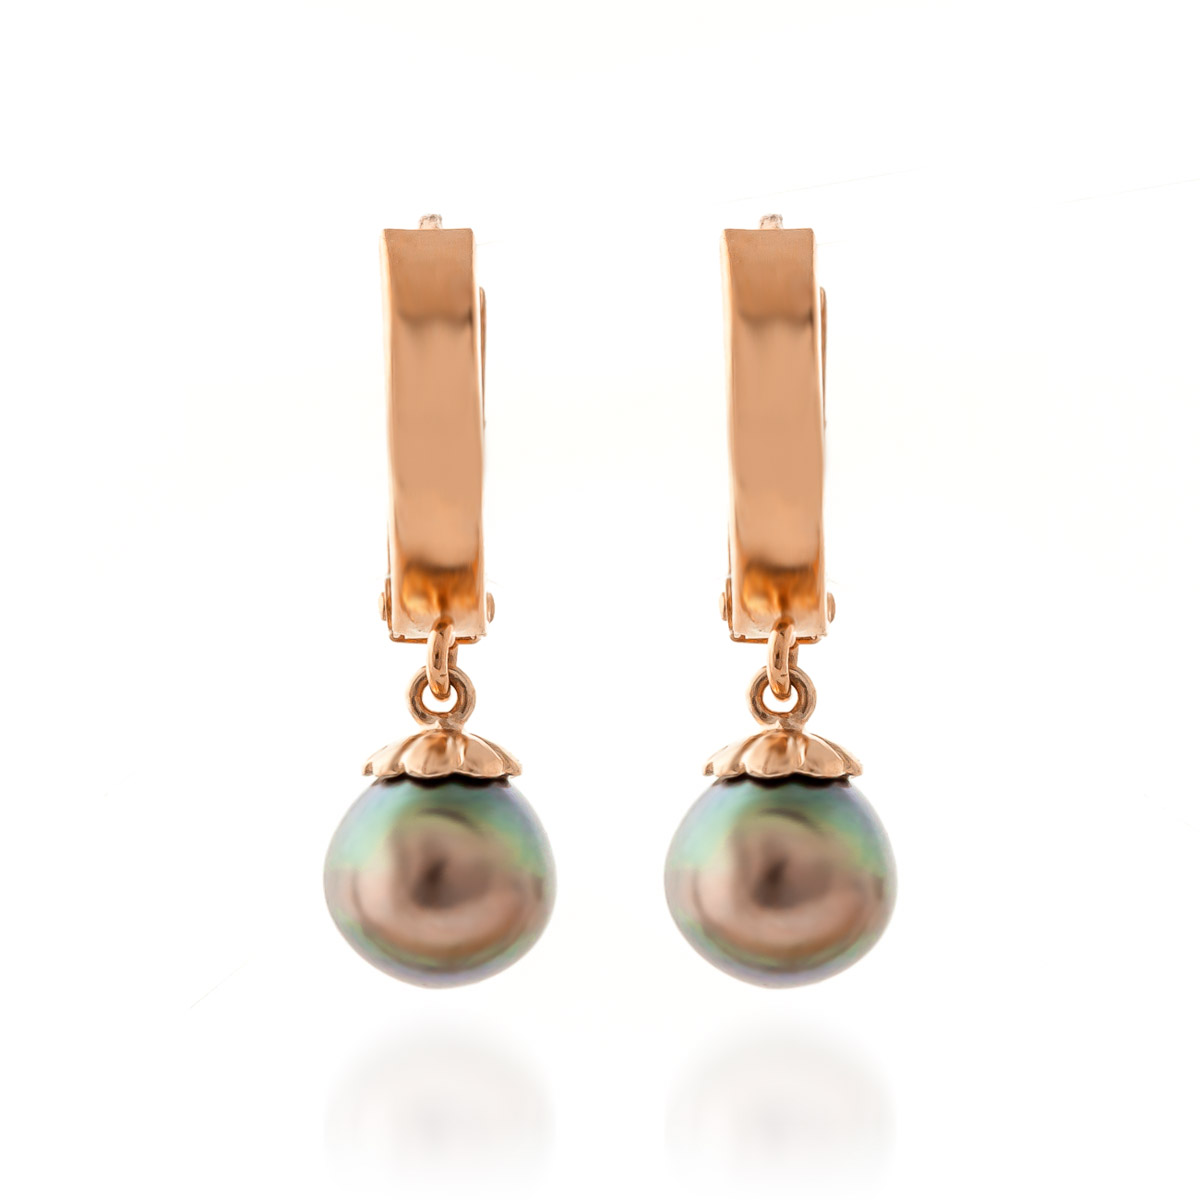 Black Pearl Drop Earrings 4.0ctw in 9ct Rose Gold